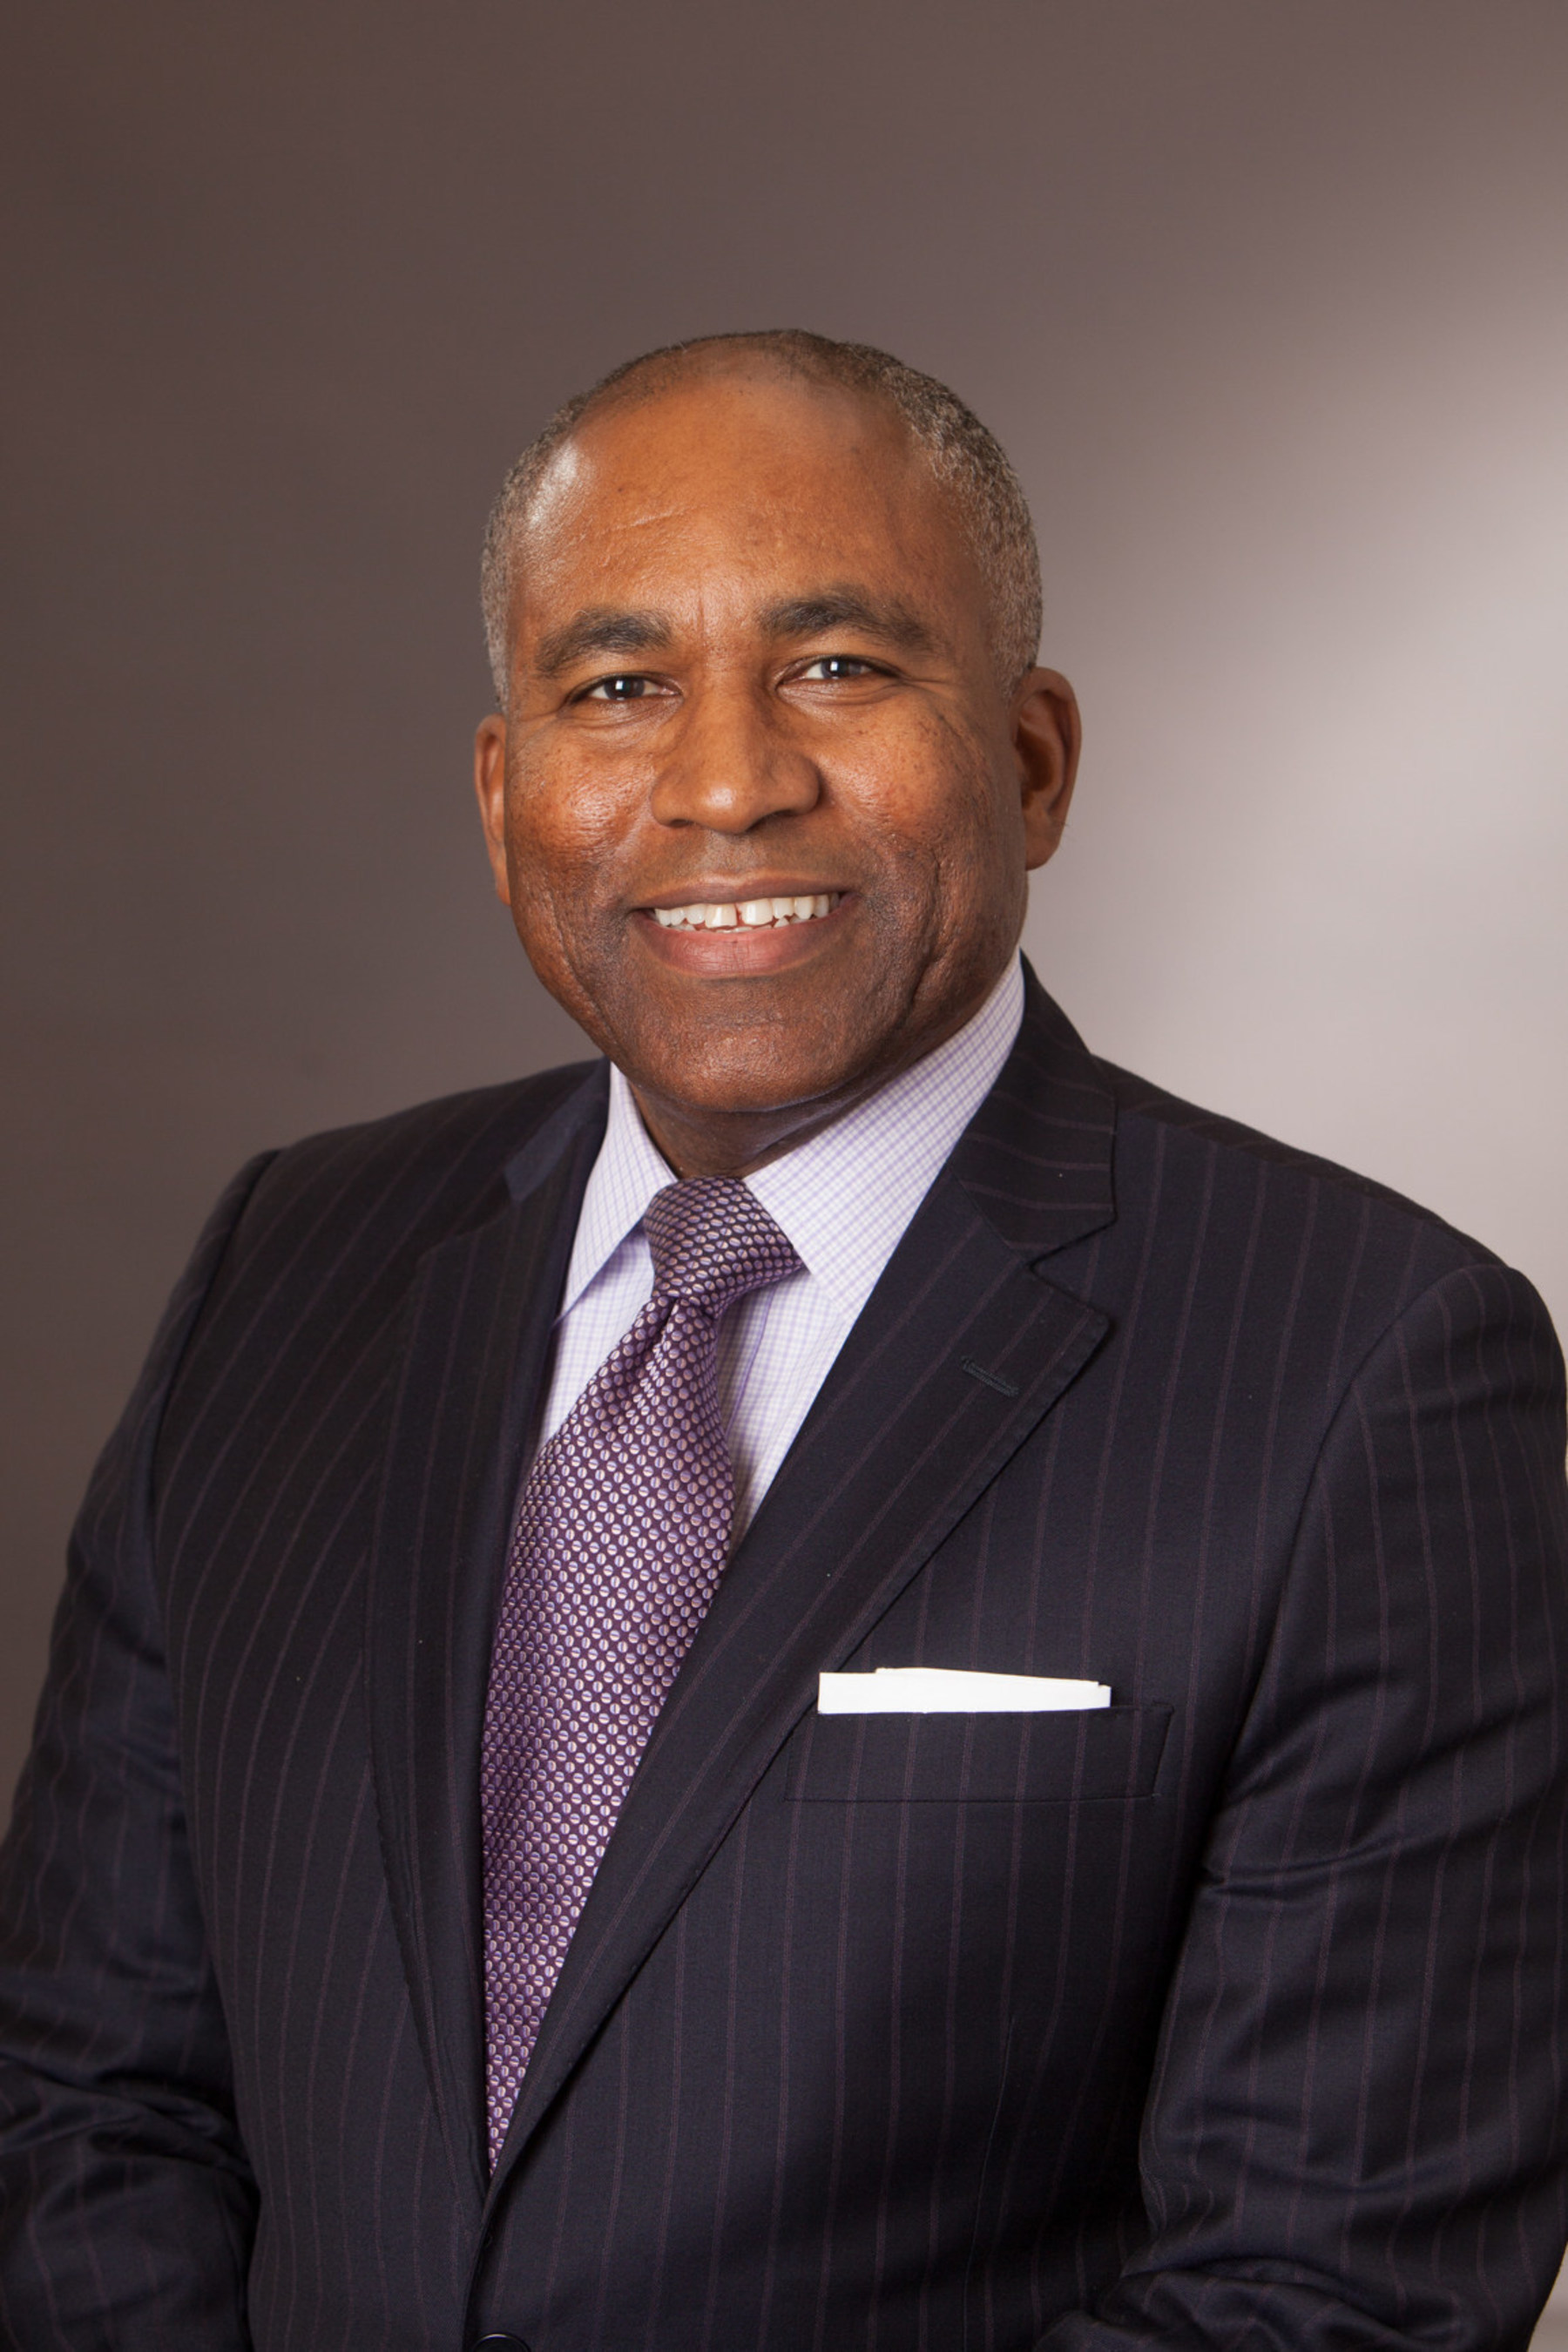 Marc A. Howze is appointed Senior Vice President and Chief Administrative Officer at Deere & Company, effective November 1